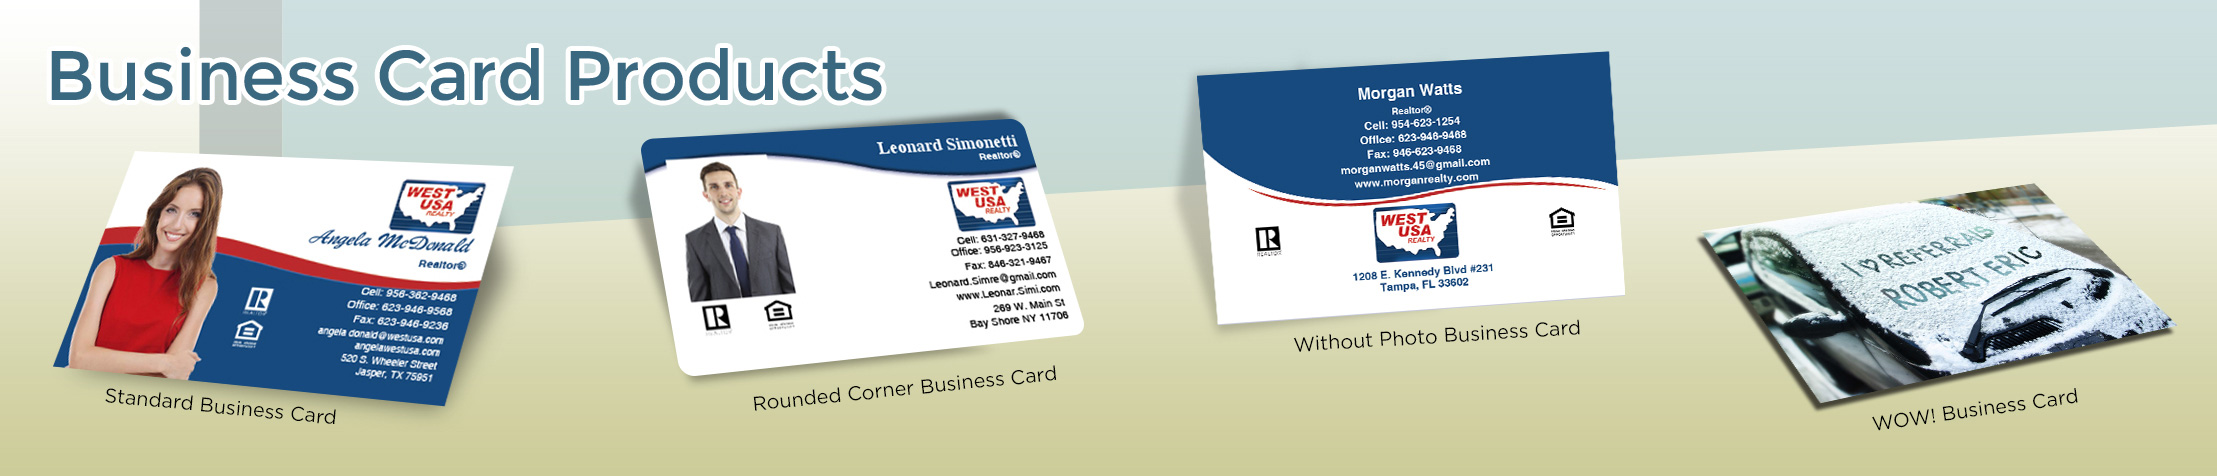 West USA Realty Real Estate Business Card Products - West USA Realty  - Unique, Custom Business Cards Printed on Quality Stock with Creative Designs for Realtors | BestPrintBuy.com